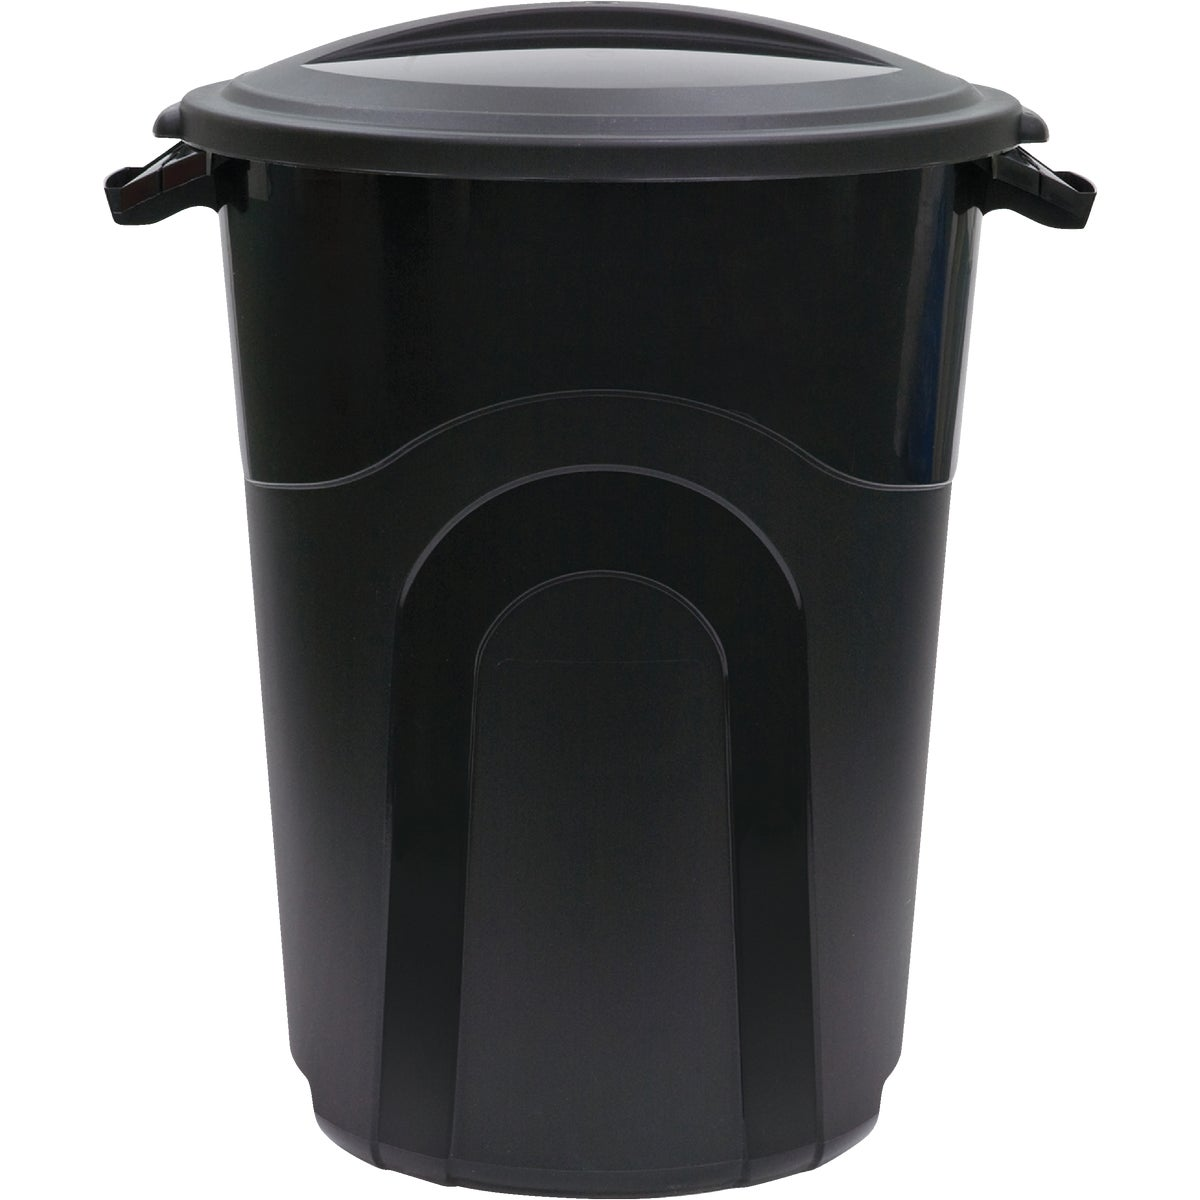 32GAL TRASH CAN - TI0007 by United Solutions